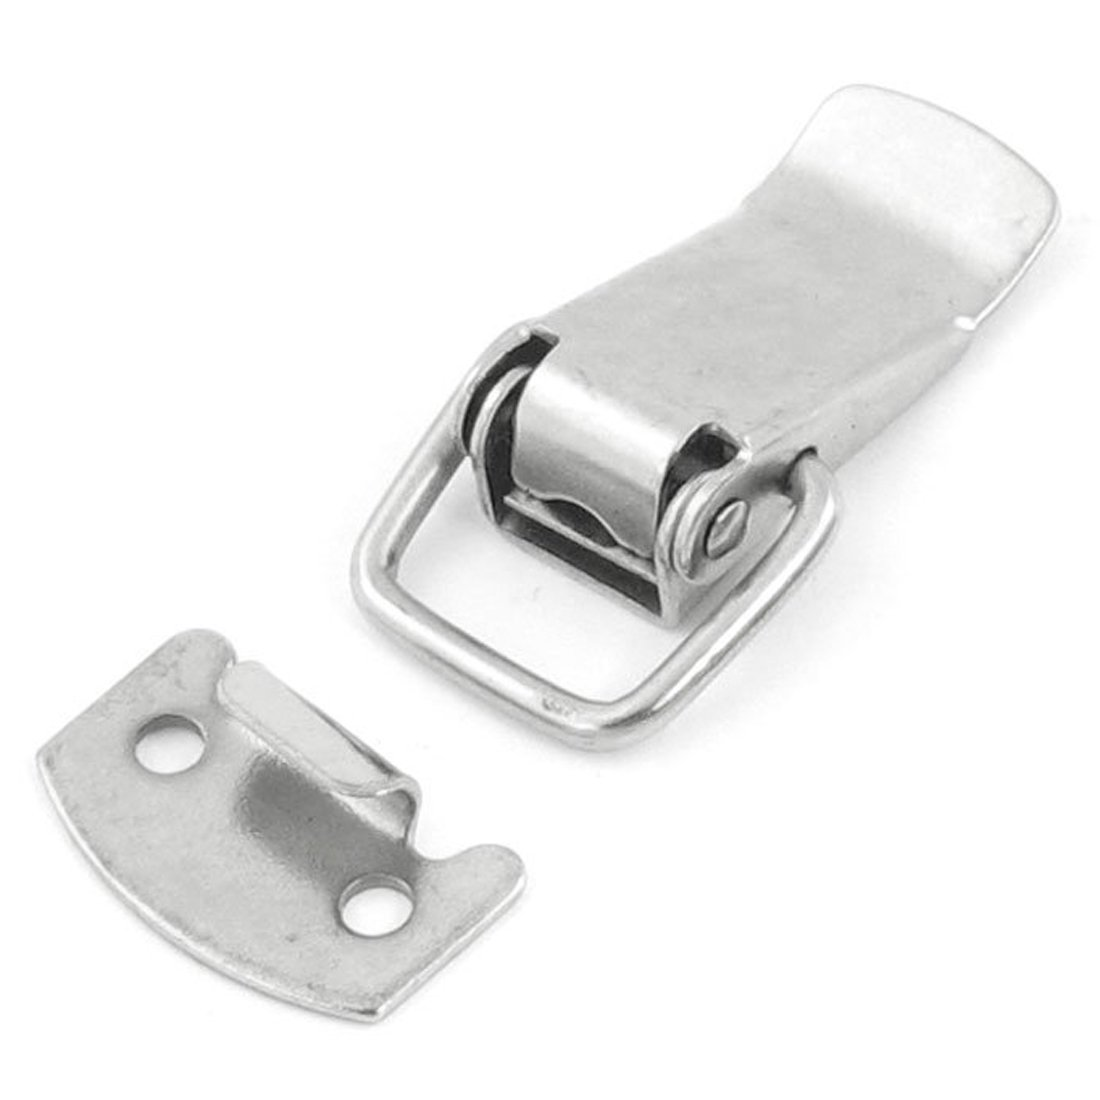 Uxcell a11121000ux0133 Box Chest Spring Loaded Stainless Steel Draw Toggle Latch